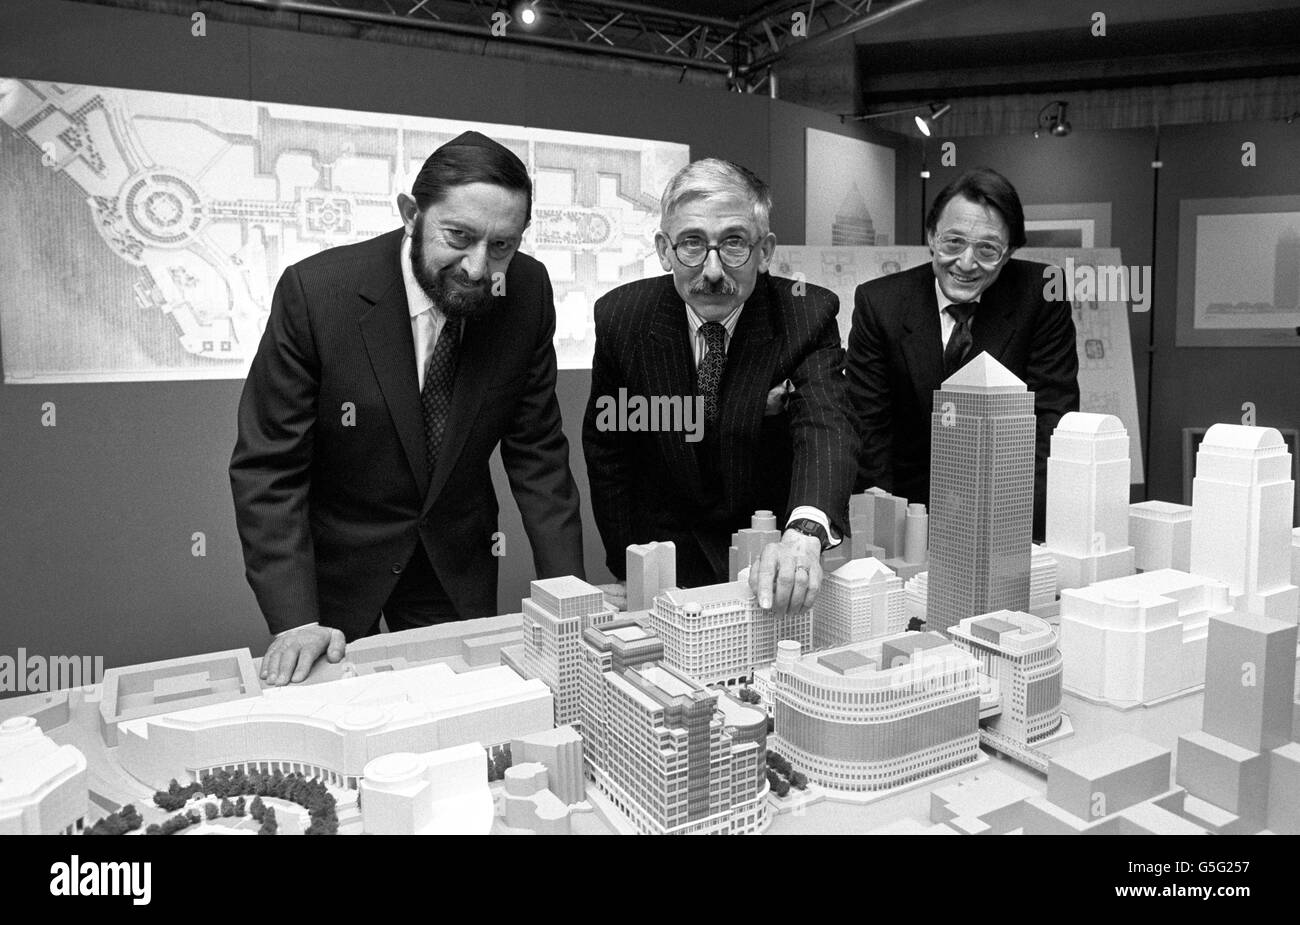 Buildings and Landmarks - Canary Wharf Model - Queen Elizabeth II Conference Centre - Stock Image